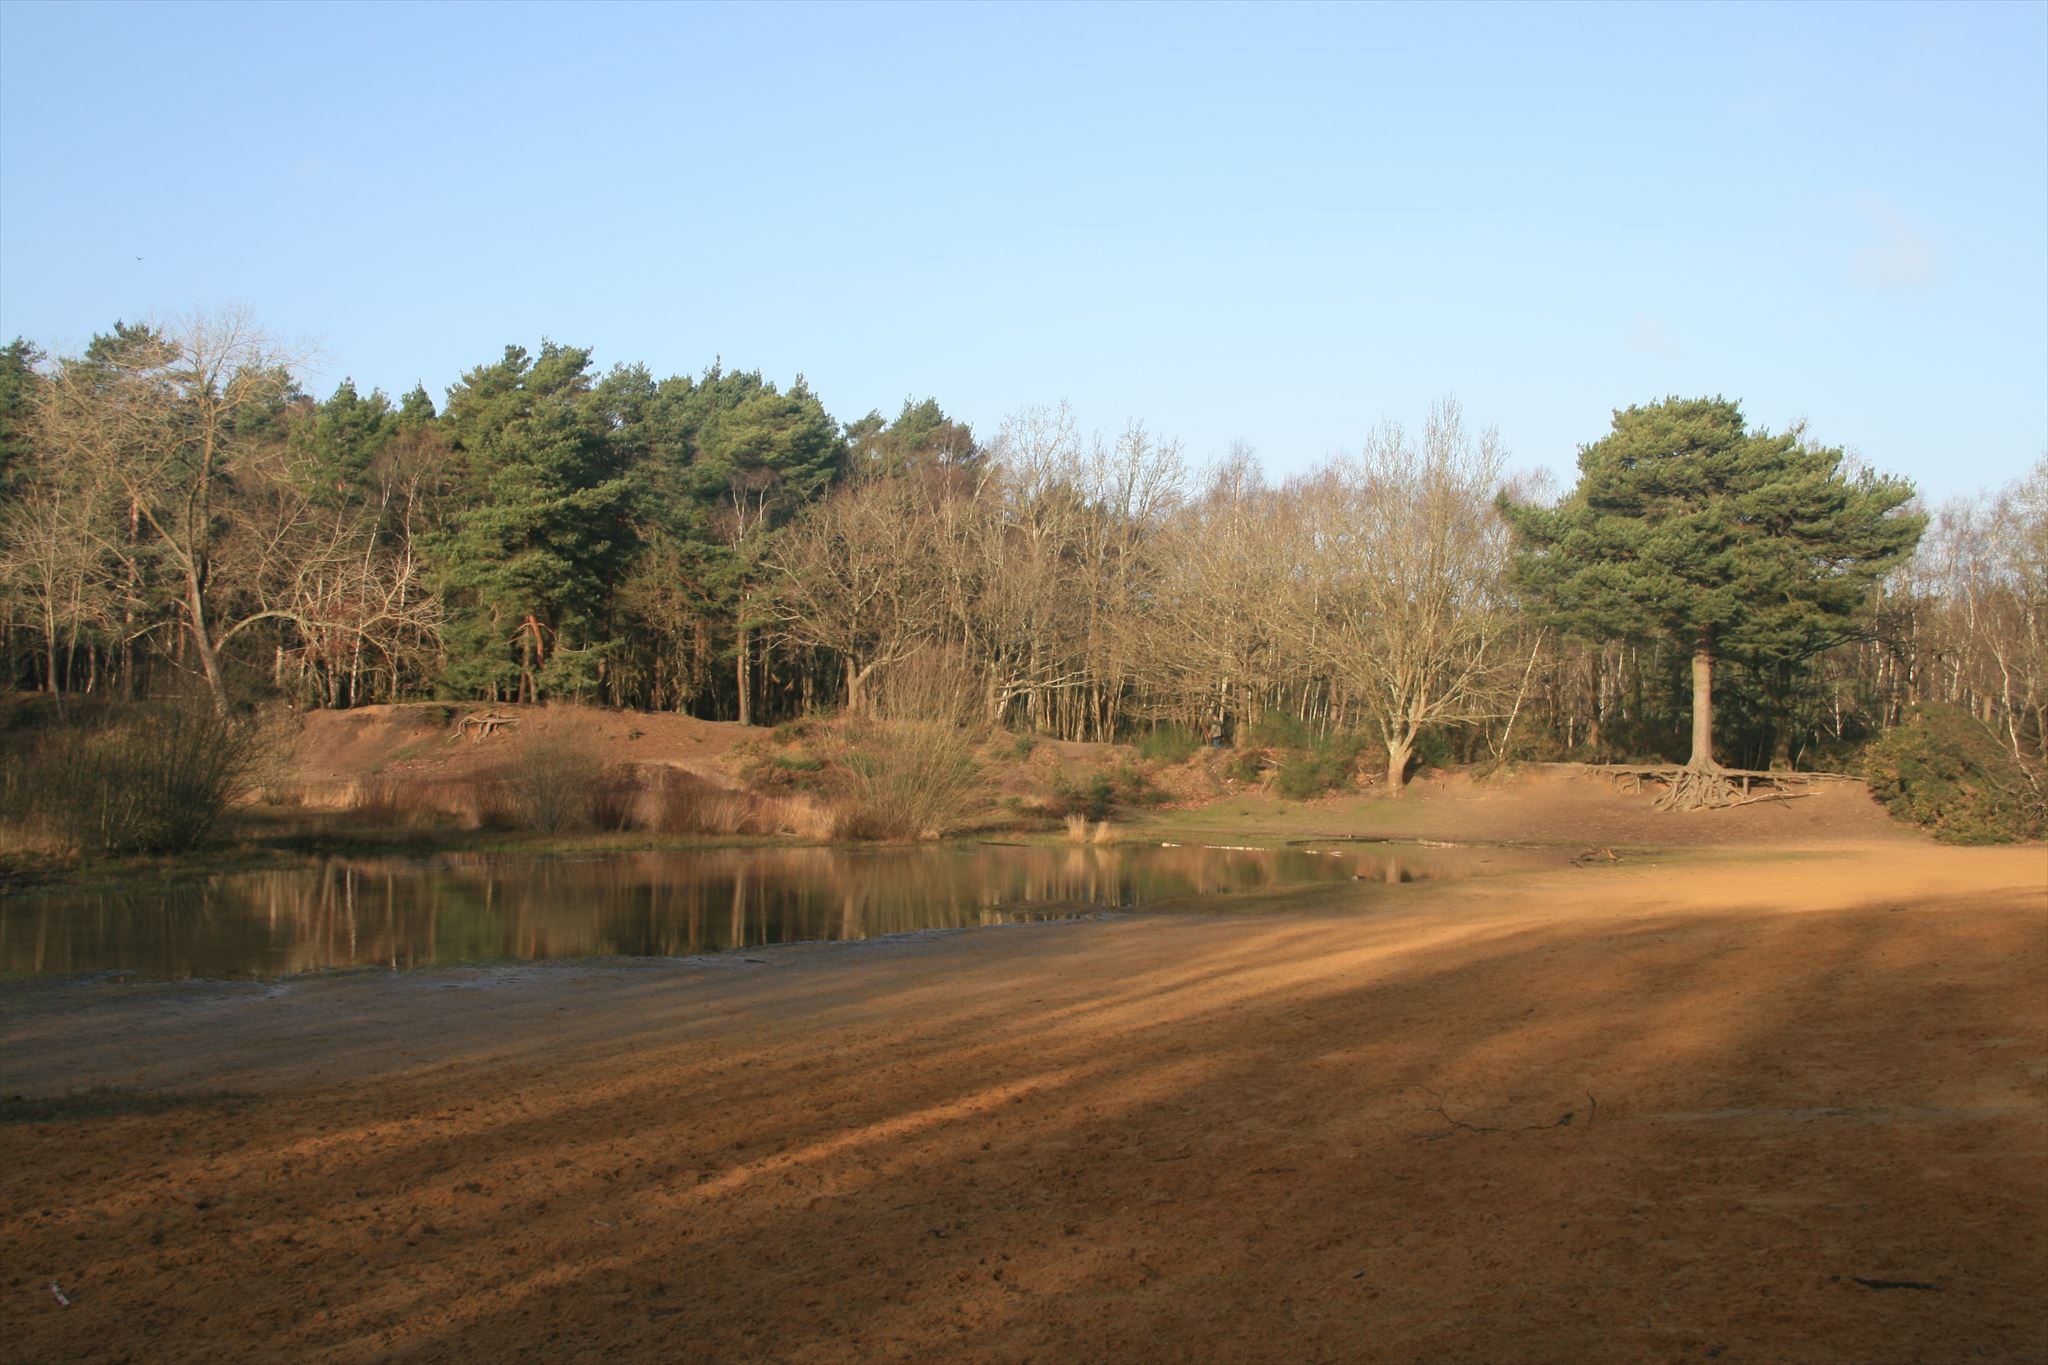 5. The Sandpit on Horsell Common